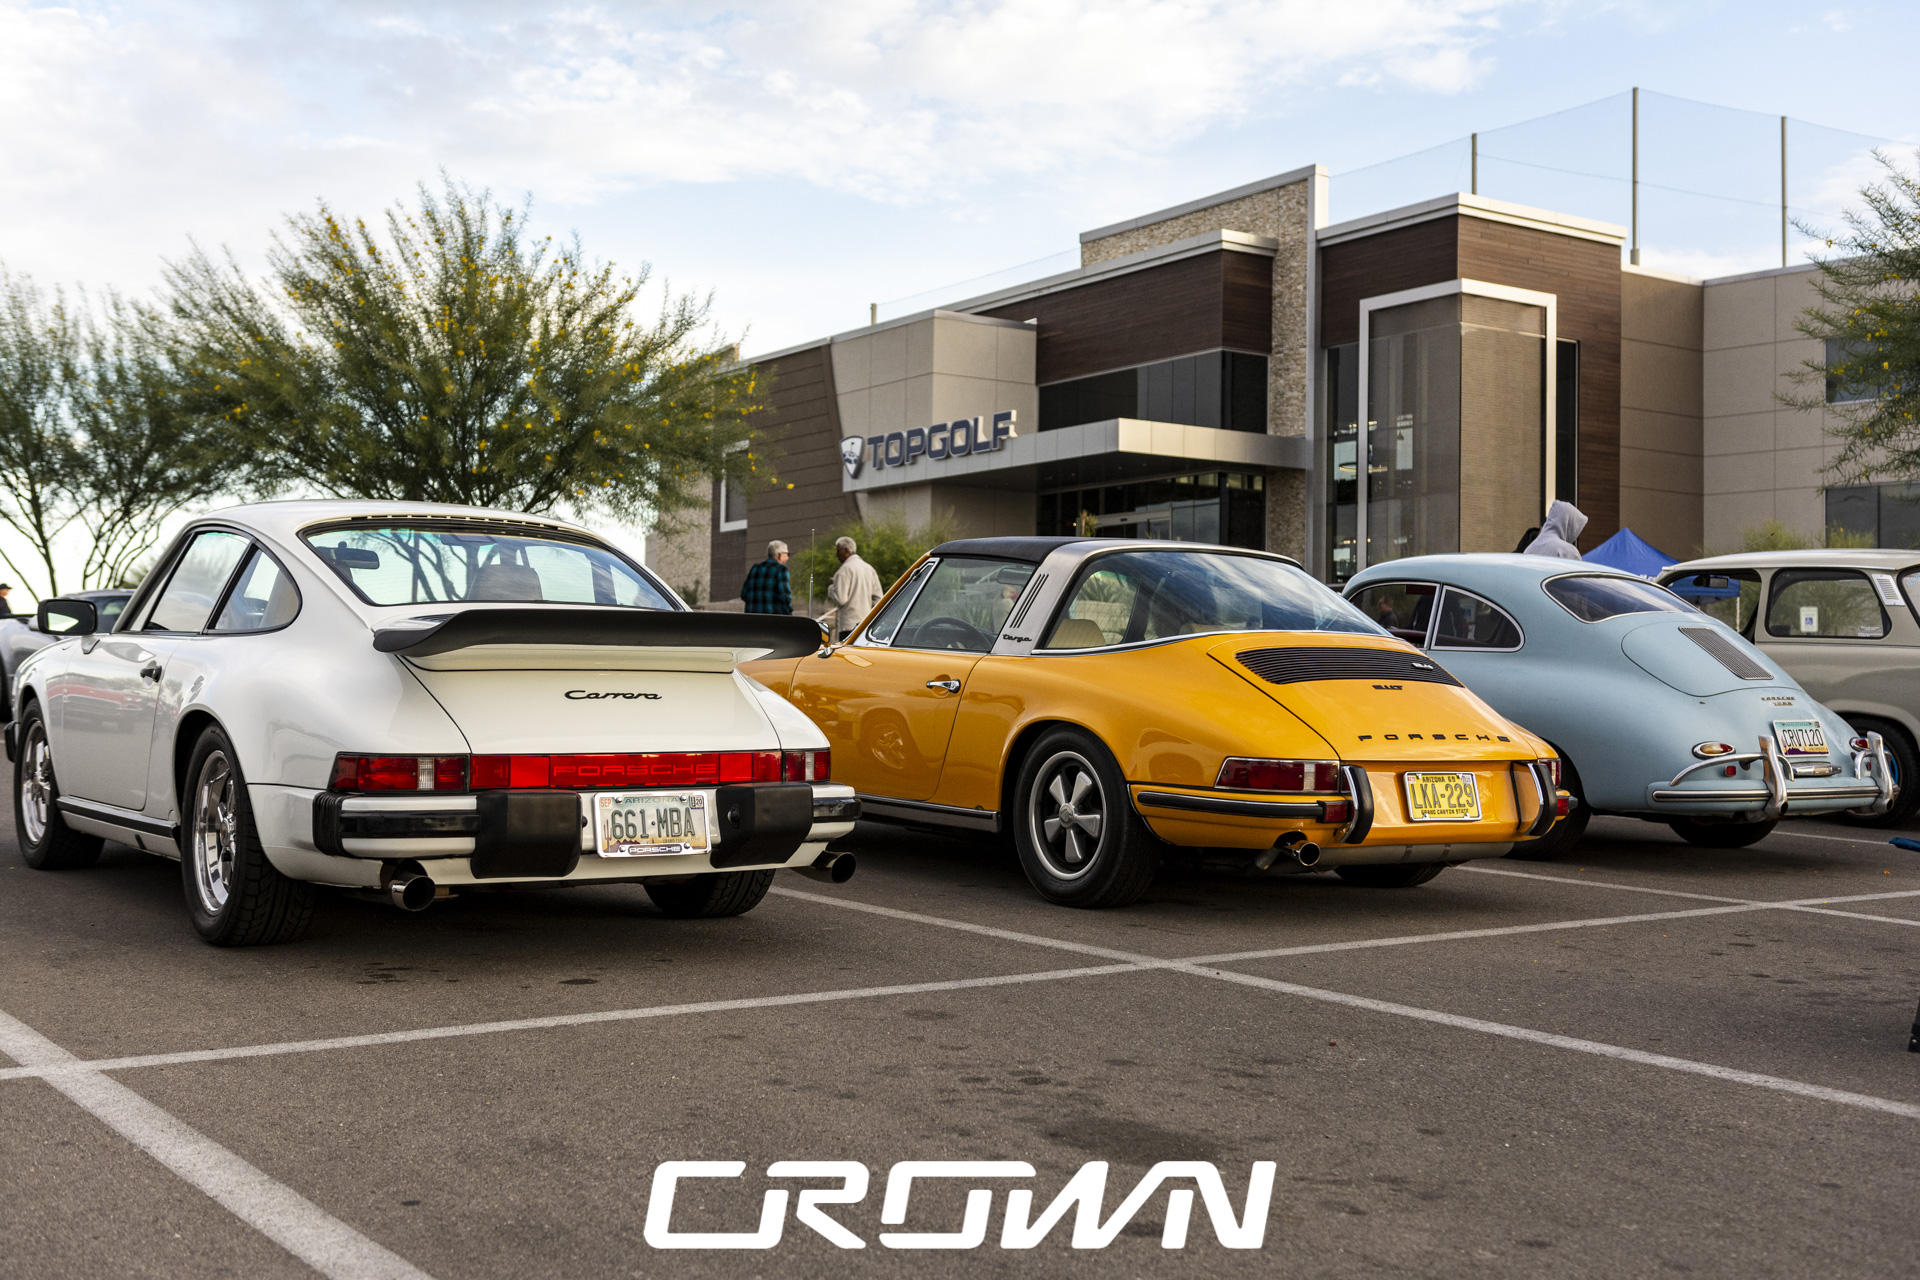 Classic Porsches at TopGolf Cars and coffee and clubs